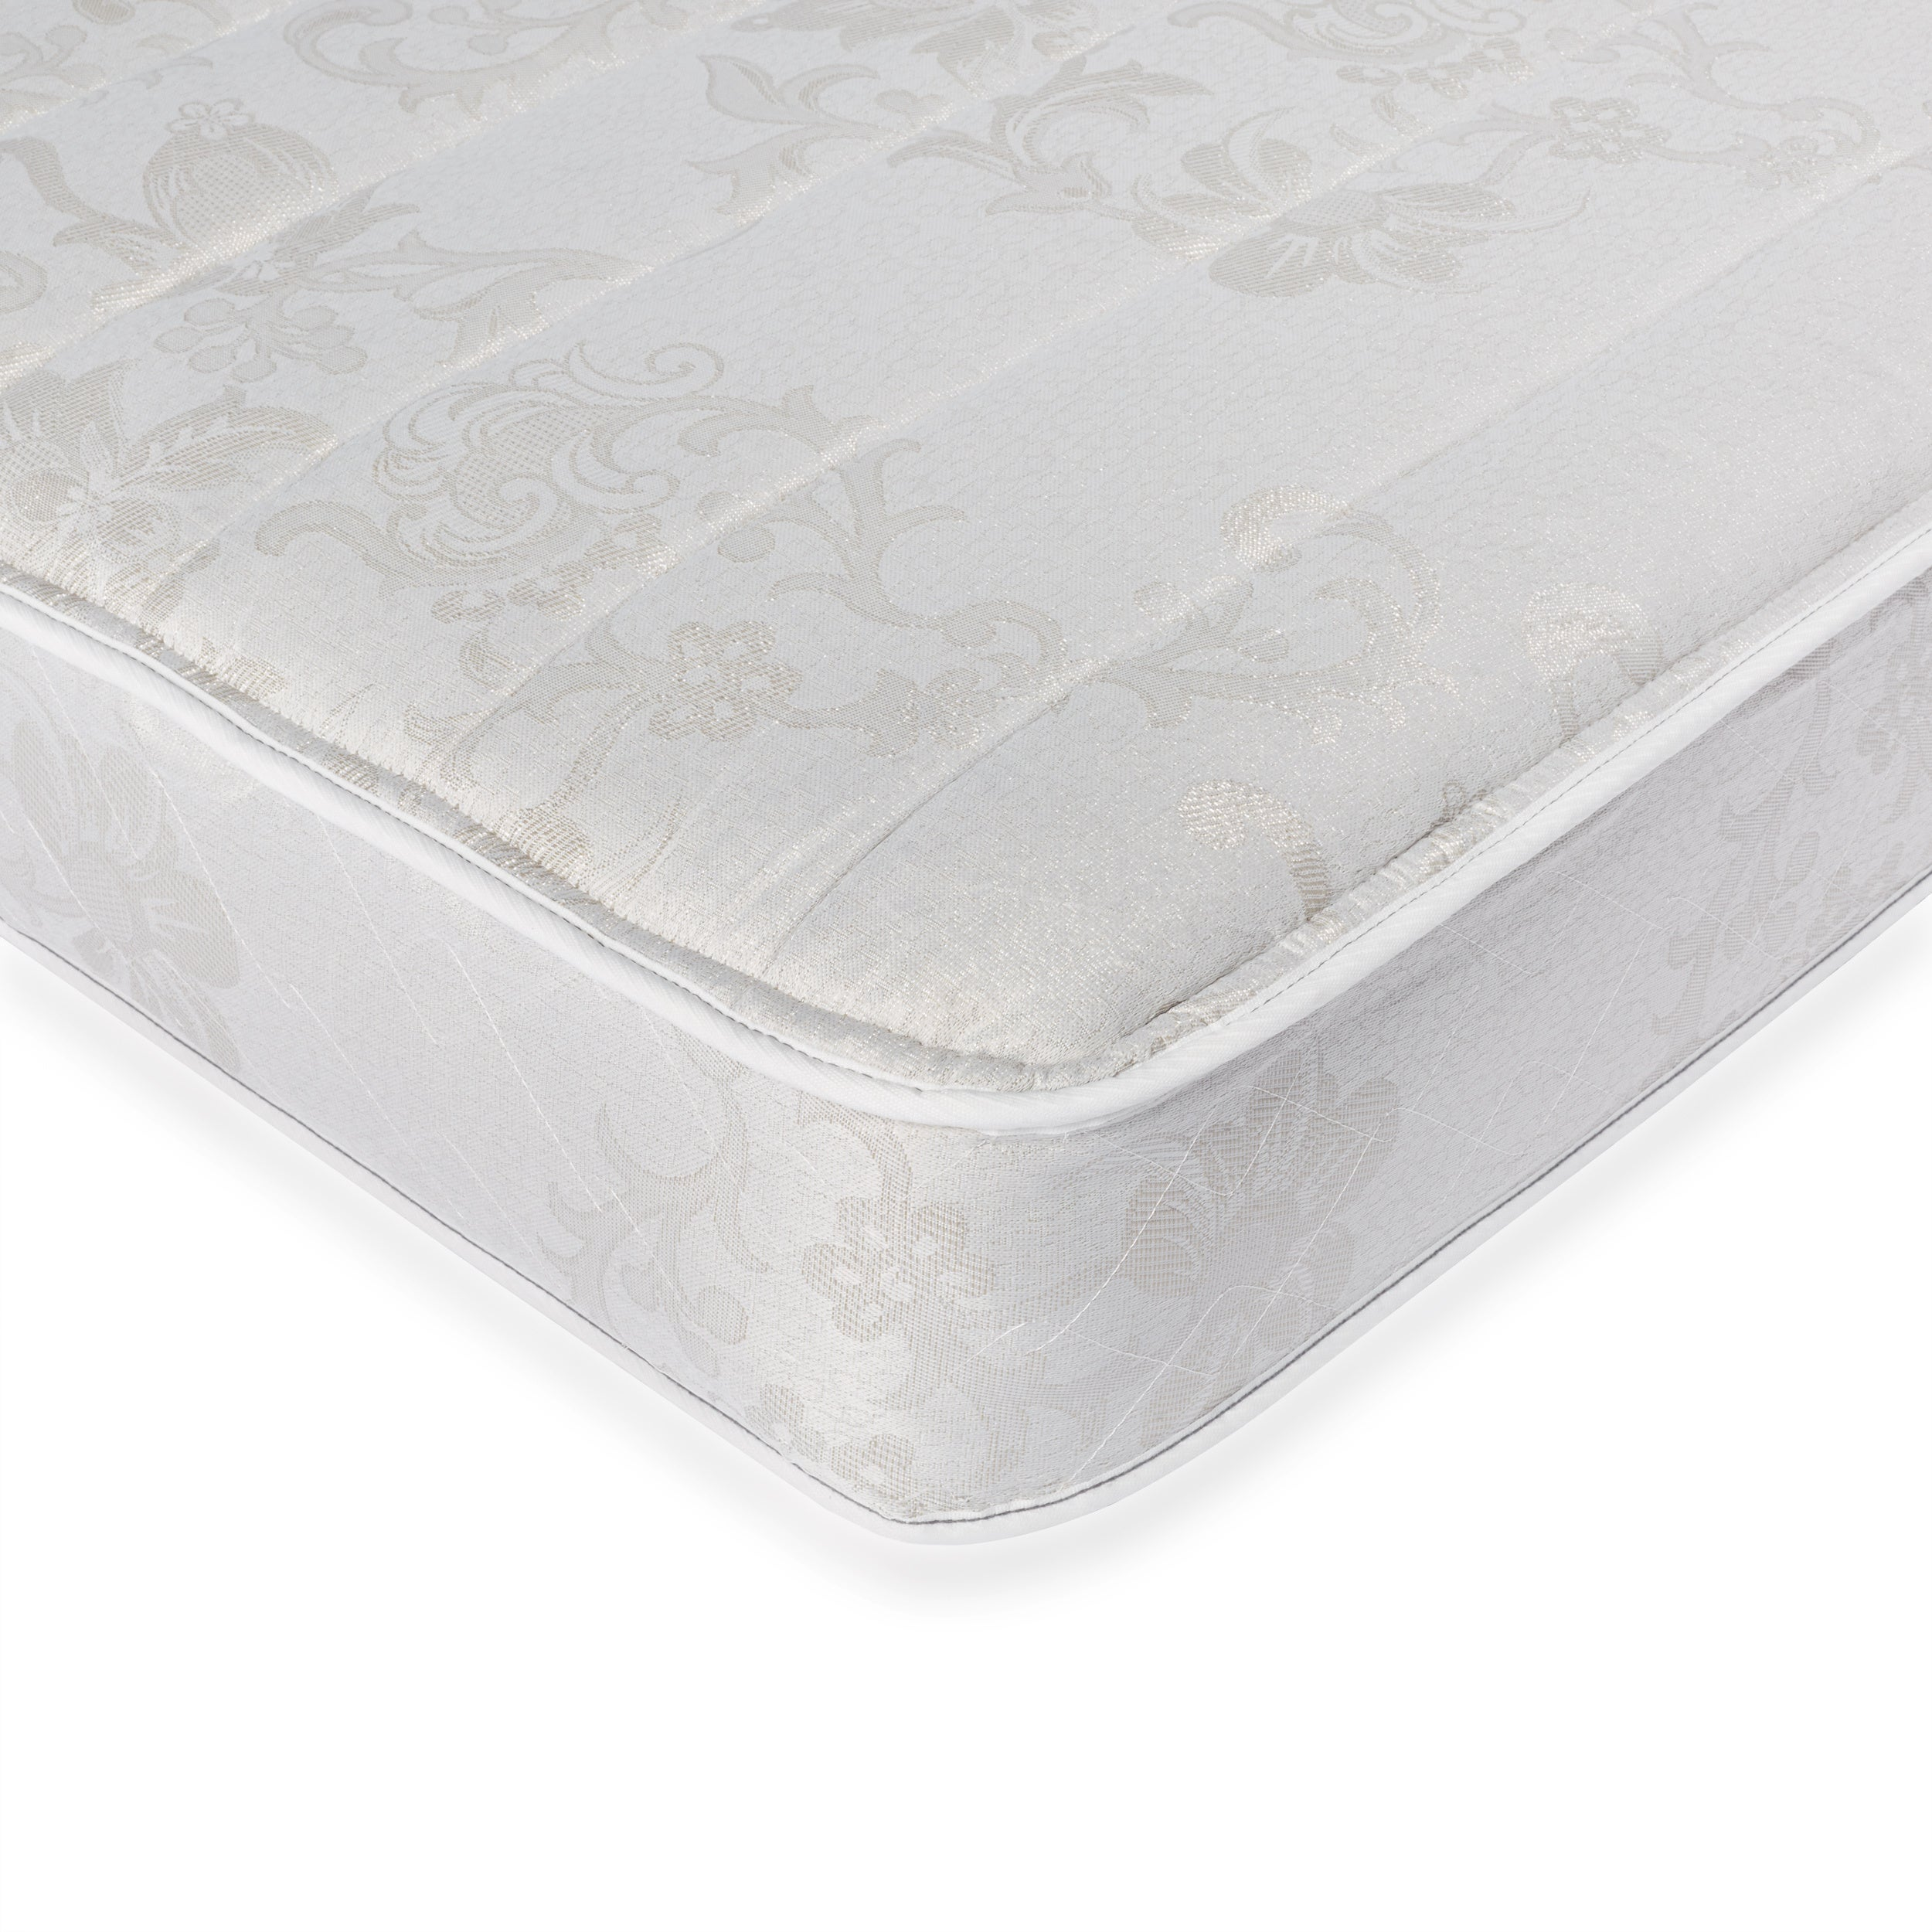 mattress spring box pad double and organic size pillow top topper full